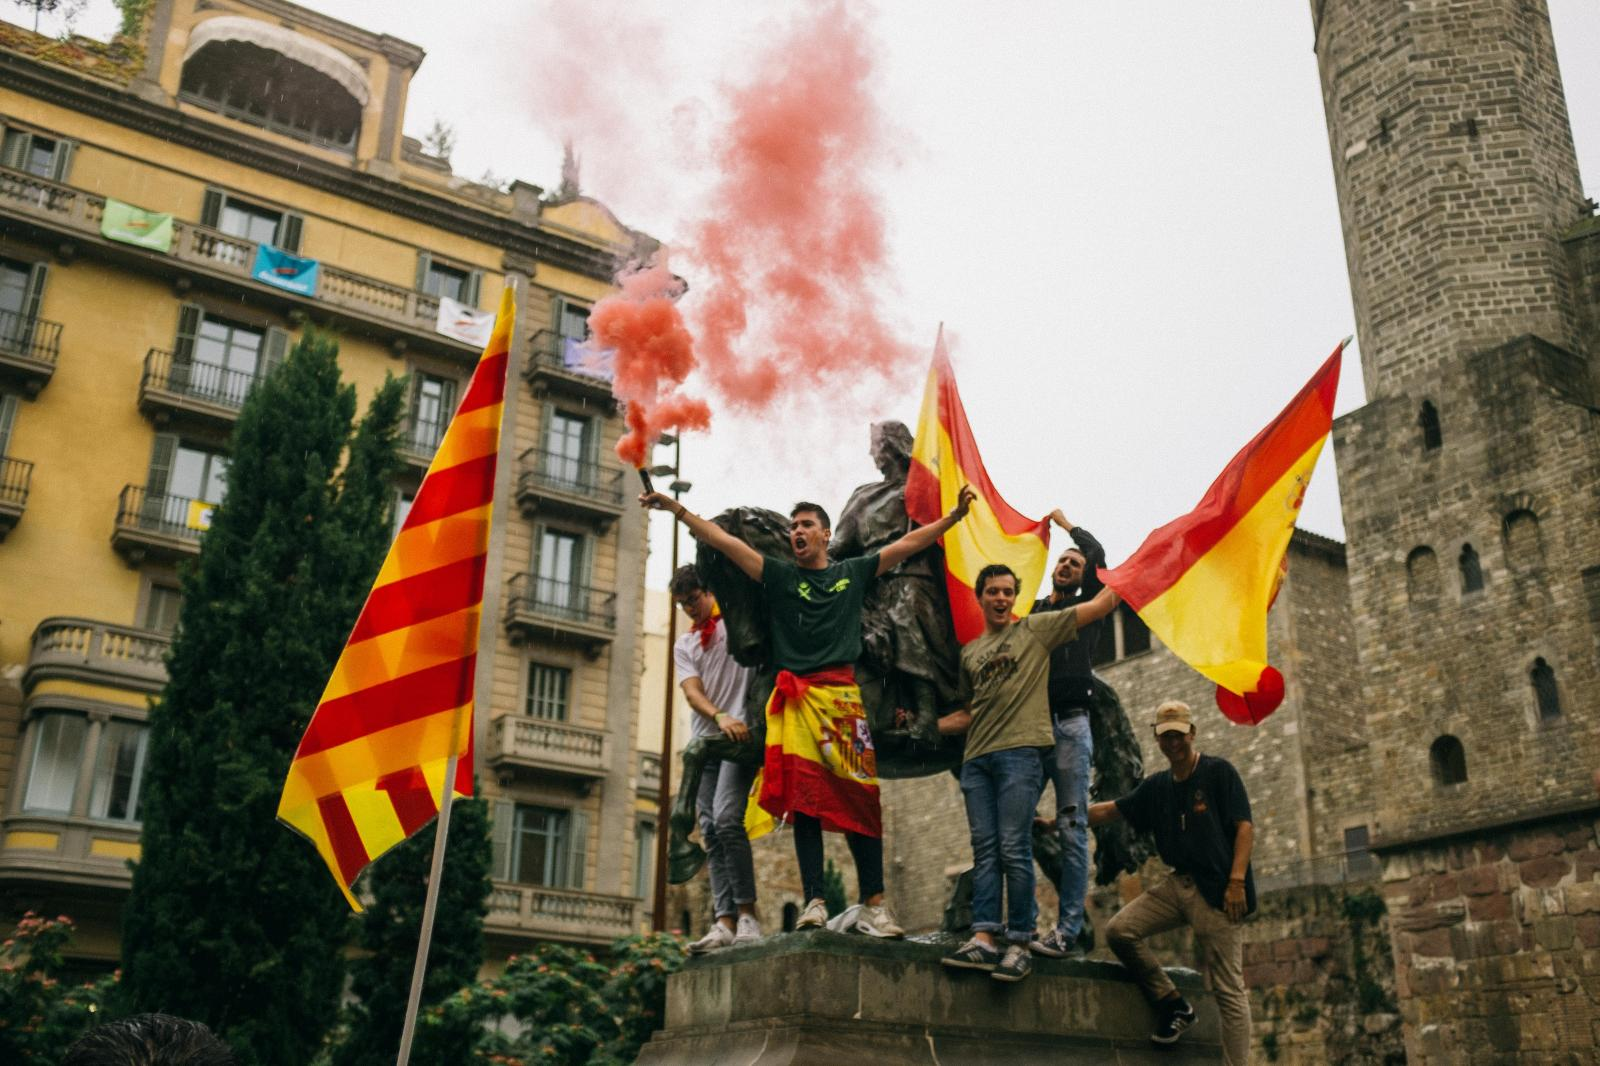 Spanish unionist and nationalist demonstration in Barcelona. September 30th, 2017